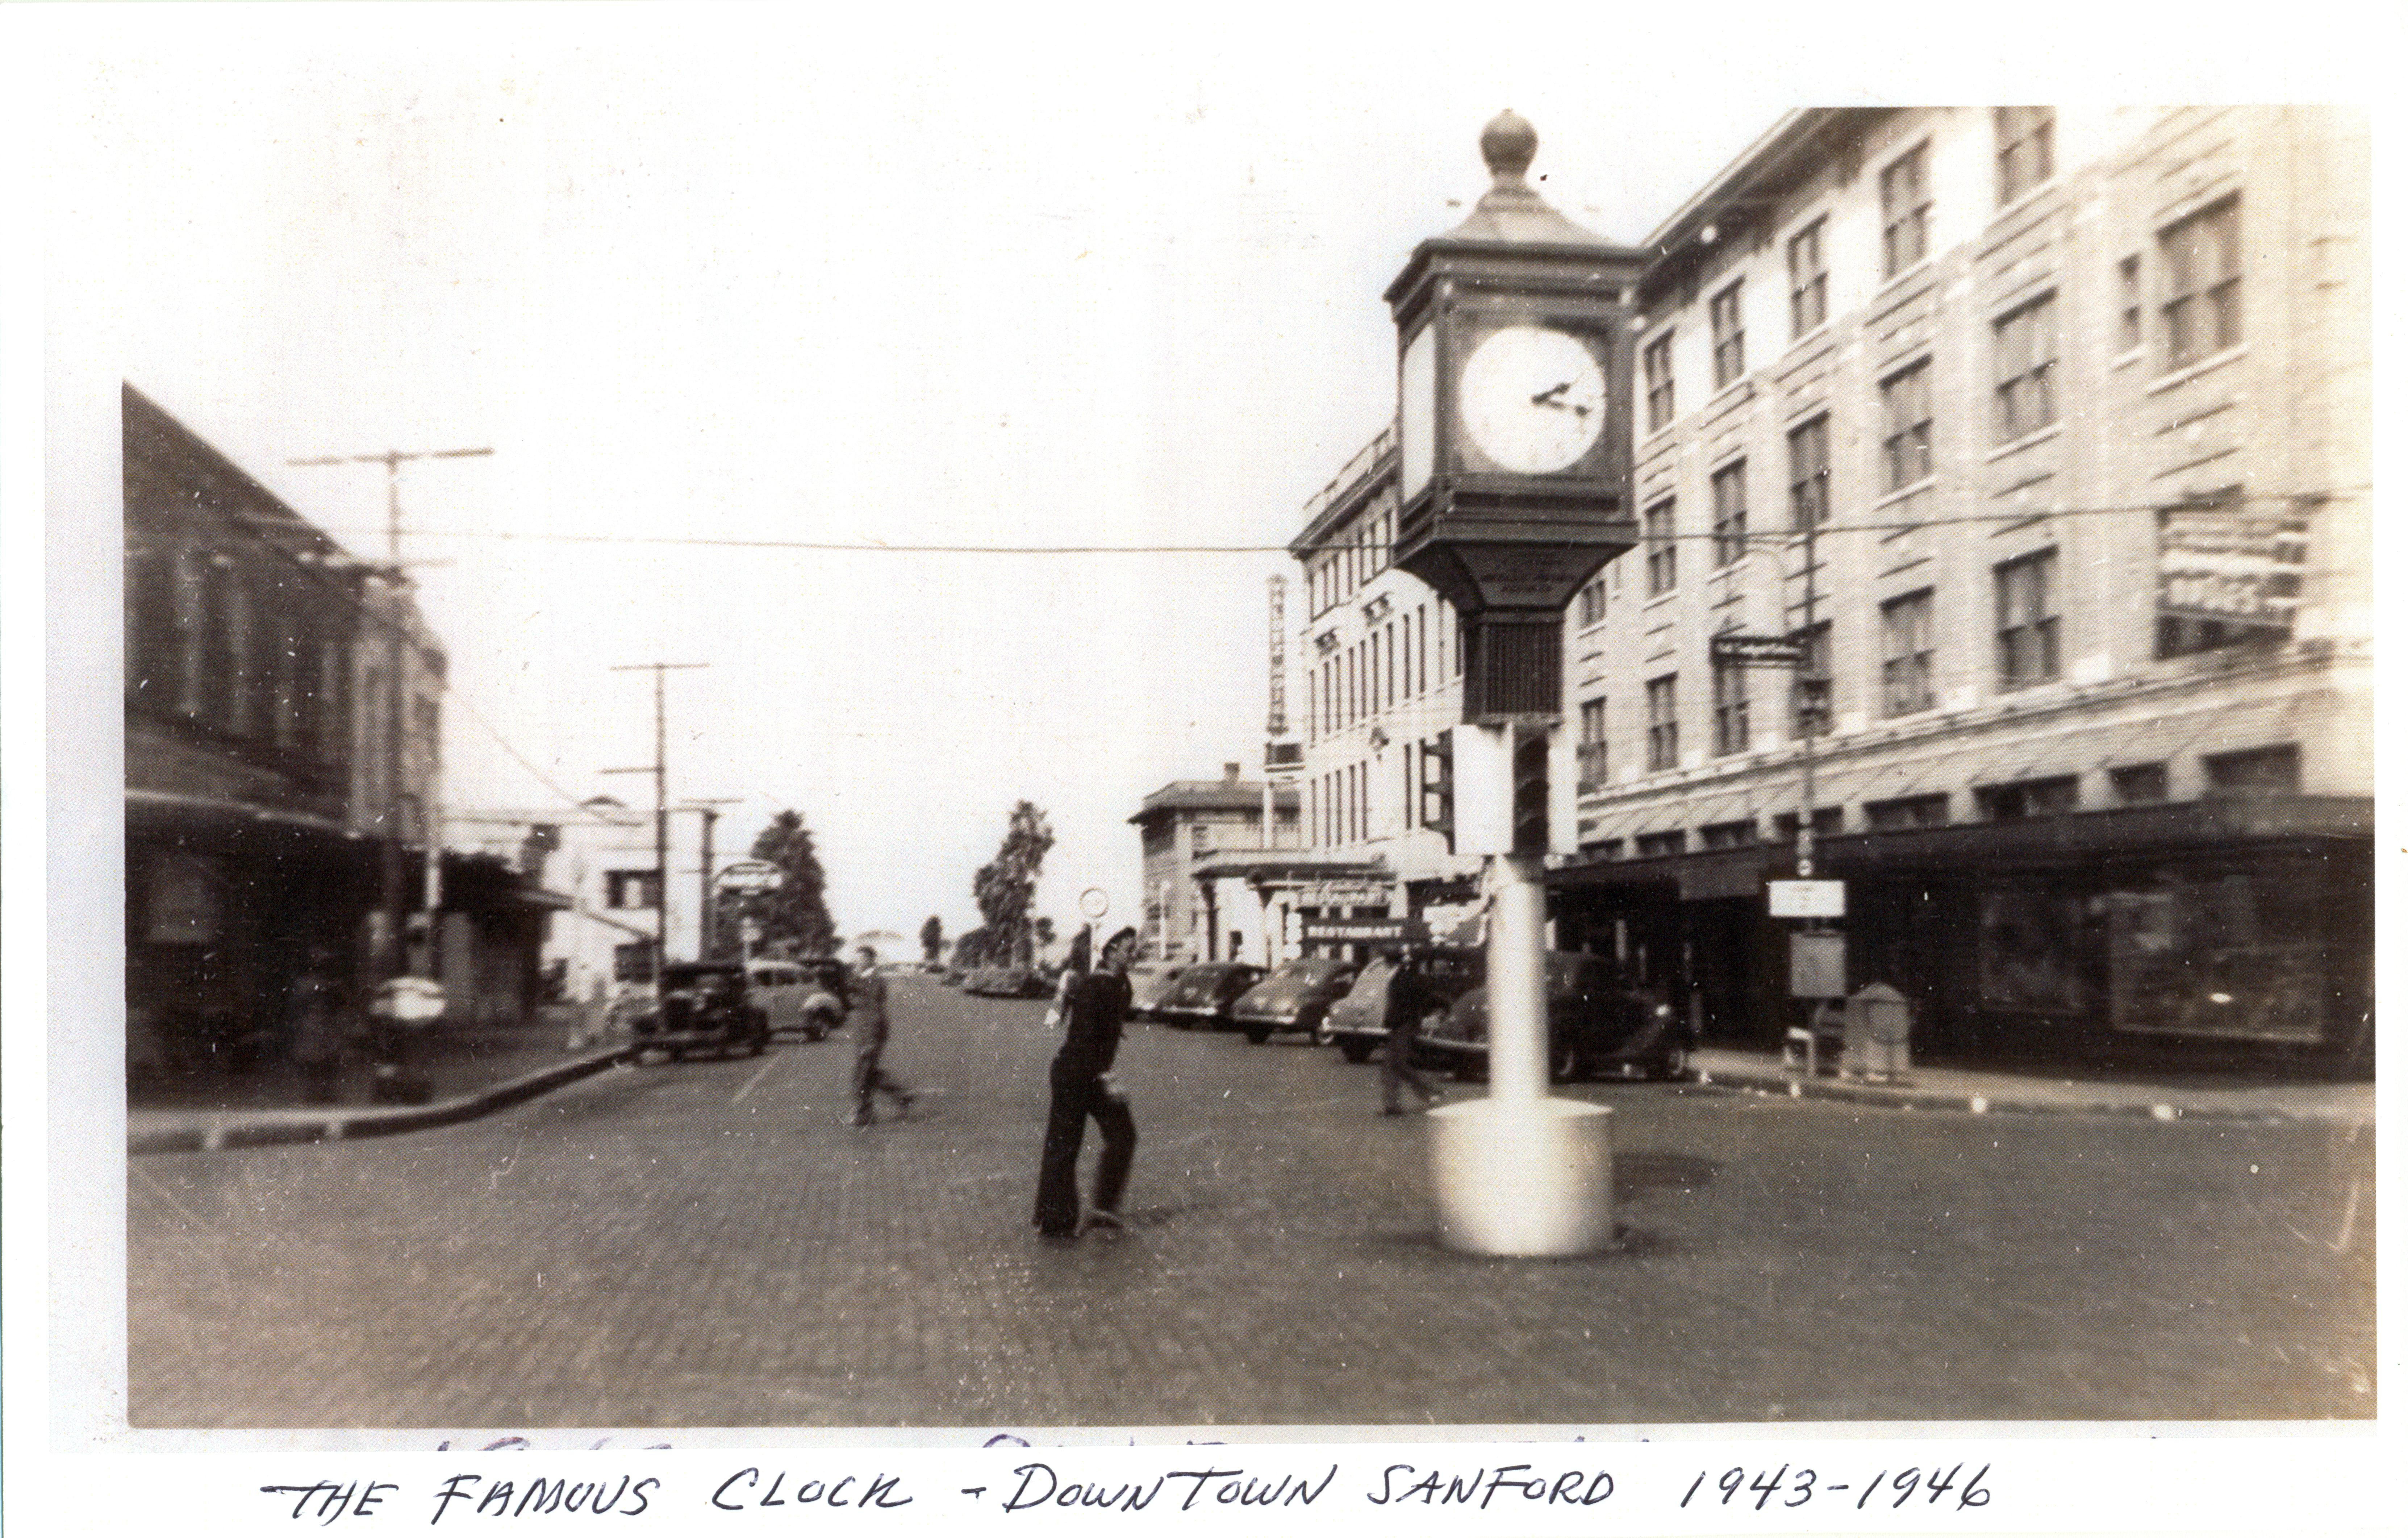 sailor walking by the historic clock in downtown sanford florida at the time that the photograph was taken the clock was located at the intersection of